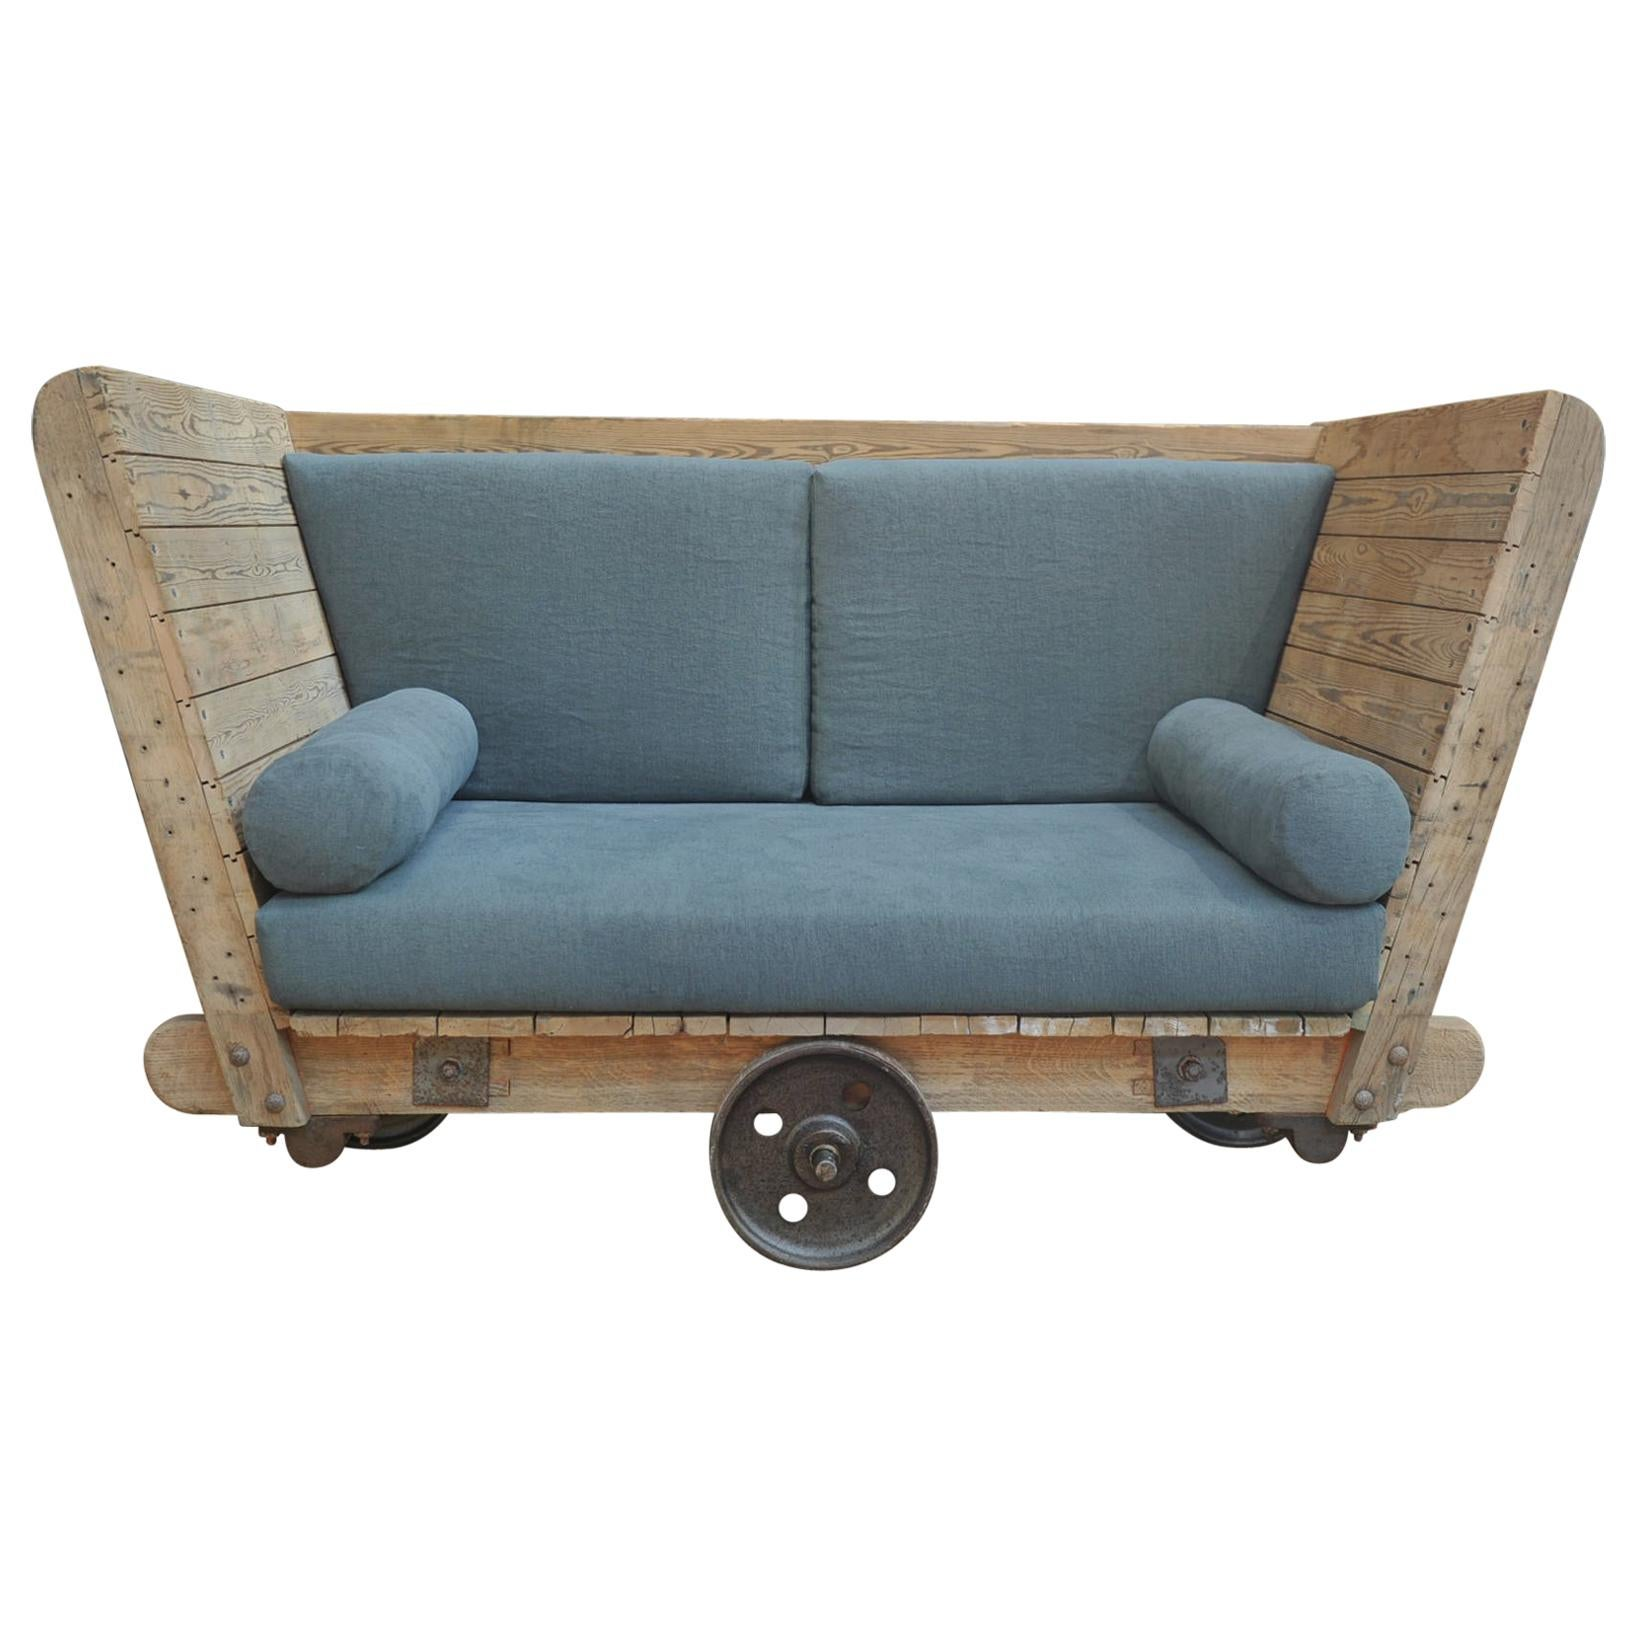 Exceptionnel 1920s Pine And Metal Wheels Trolley In Reupholstered In Sofa